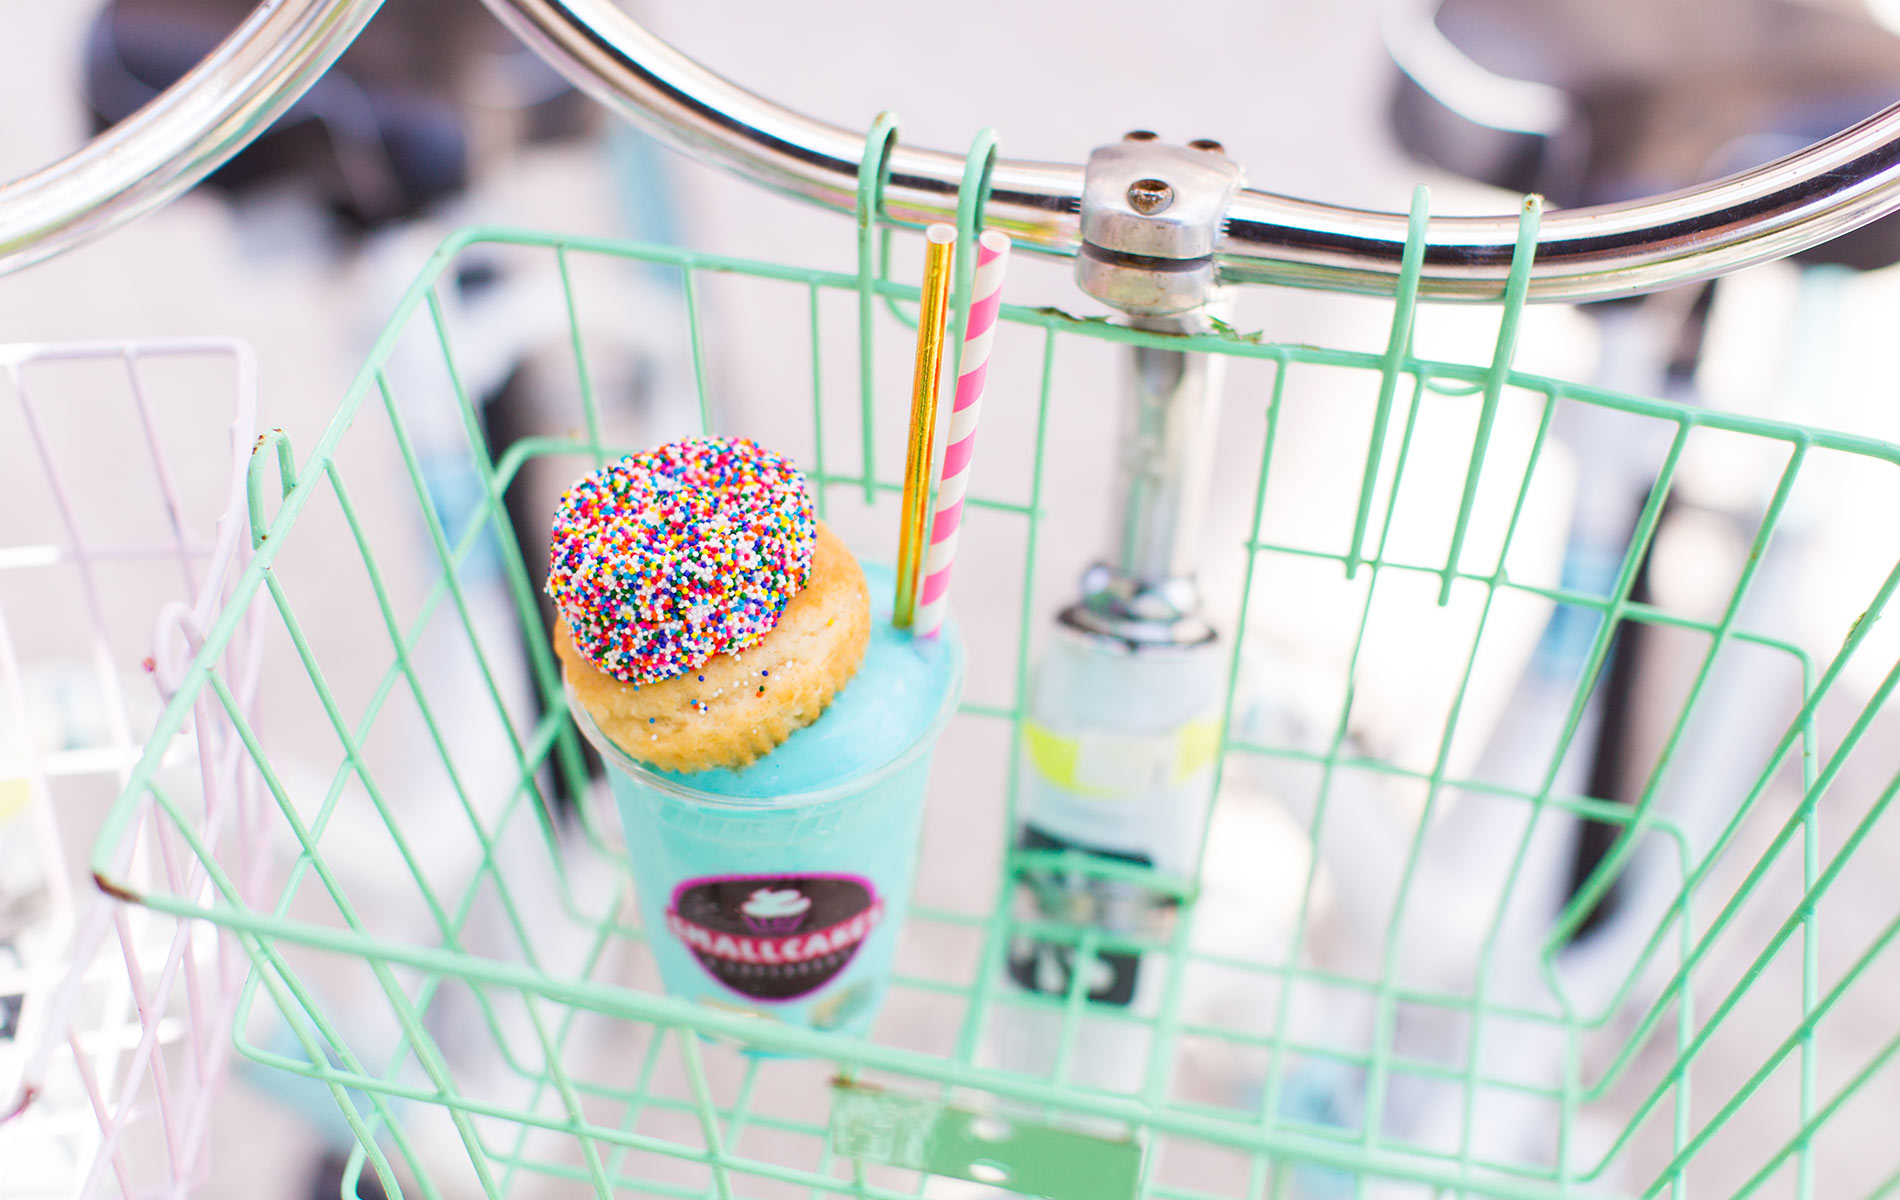 Smallcakes Cupcakery and Creamery, cupcake smoothie sitting in bike basket